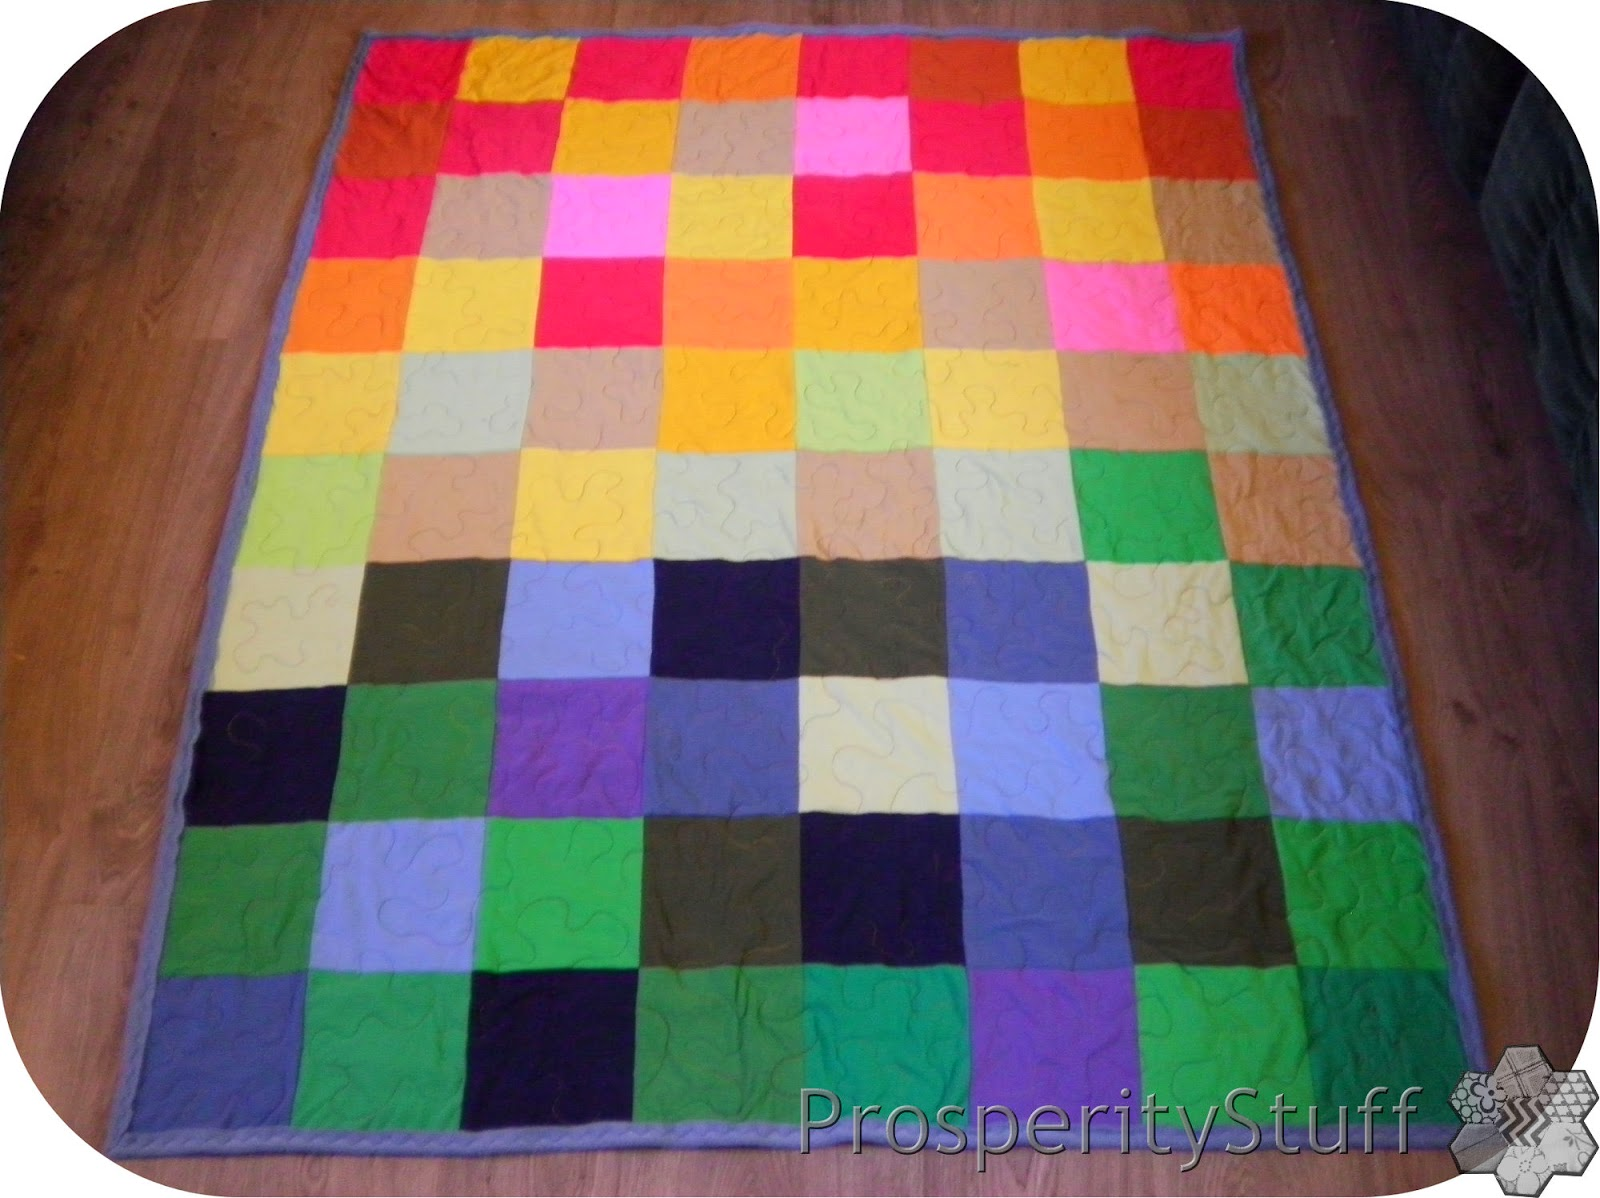 ProsperityStuff Quilts: My Quilts - photo#6